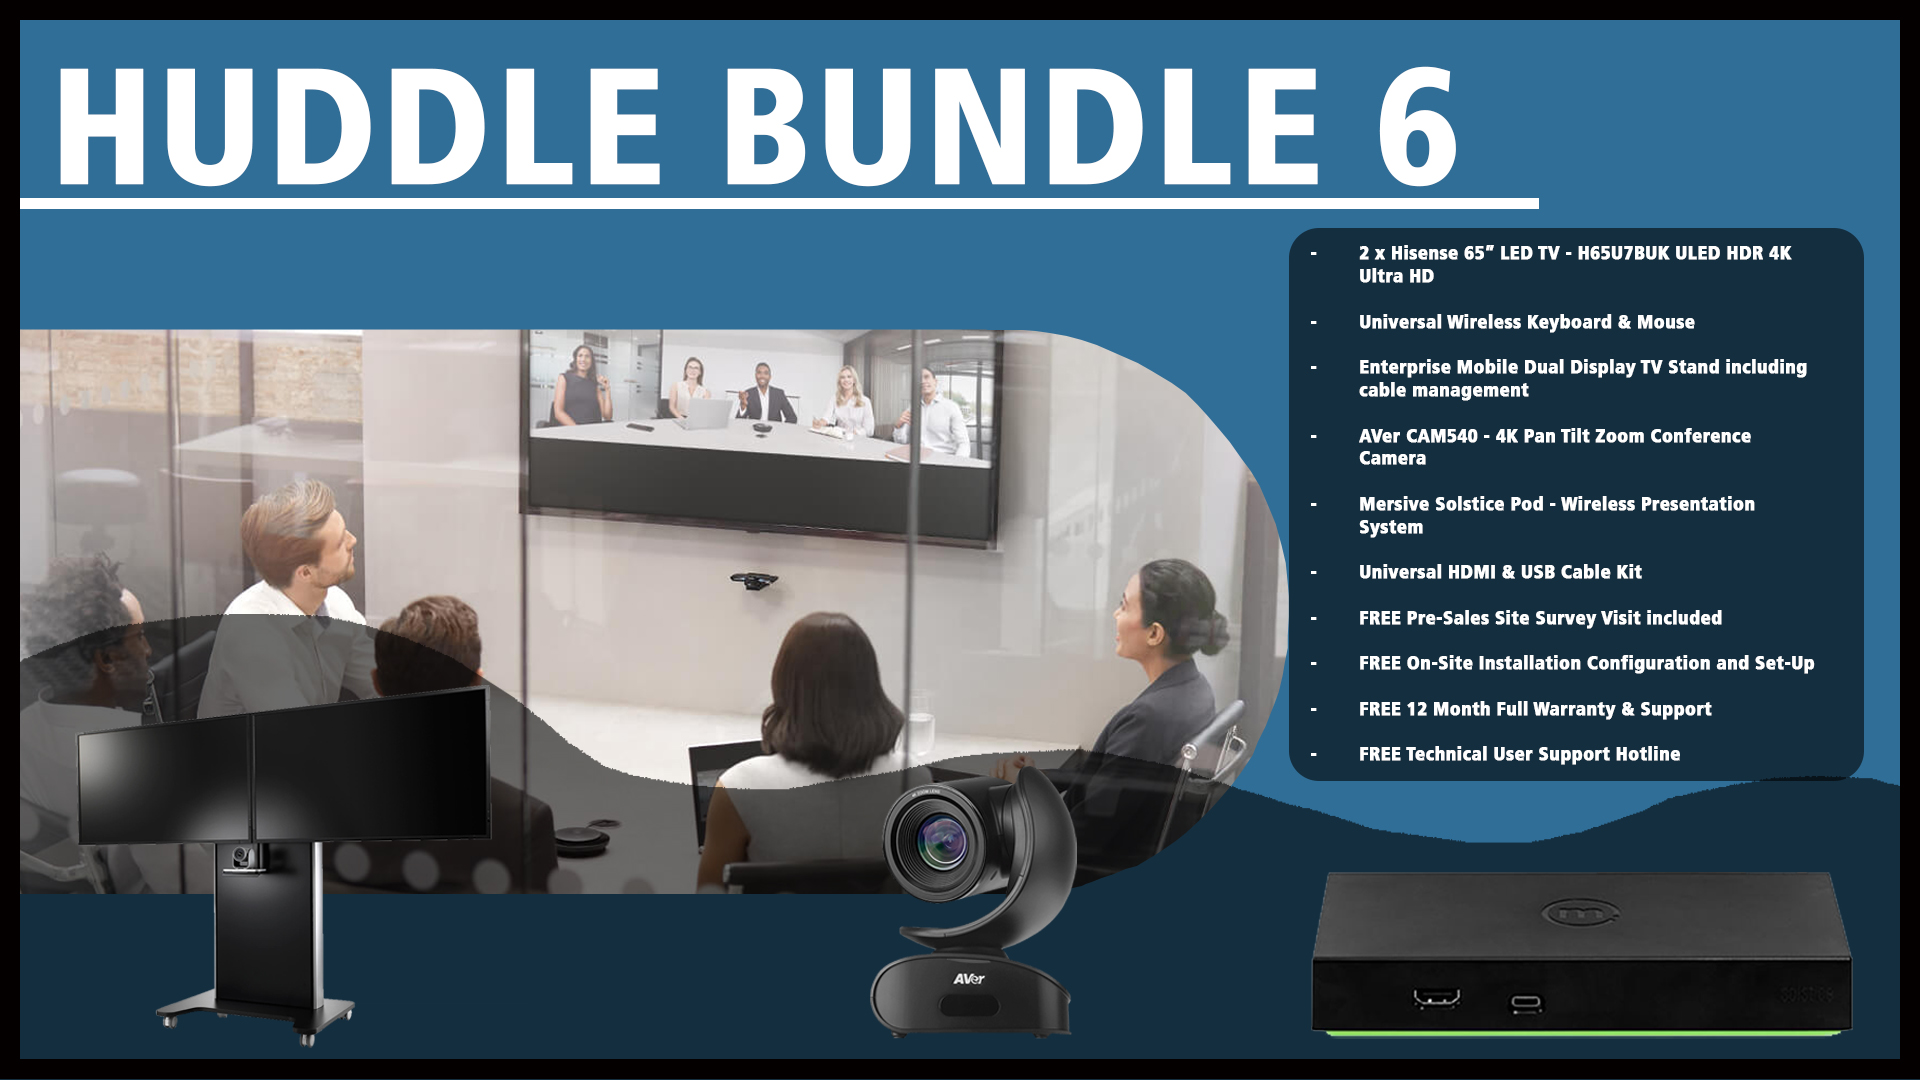 Huddle Bundle 6 - Image #1